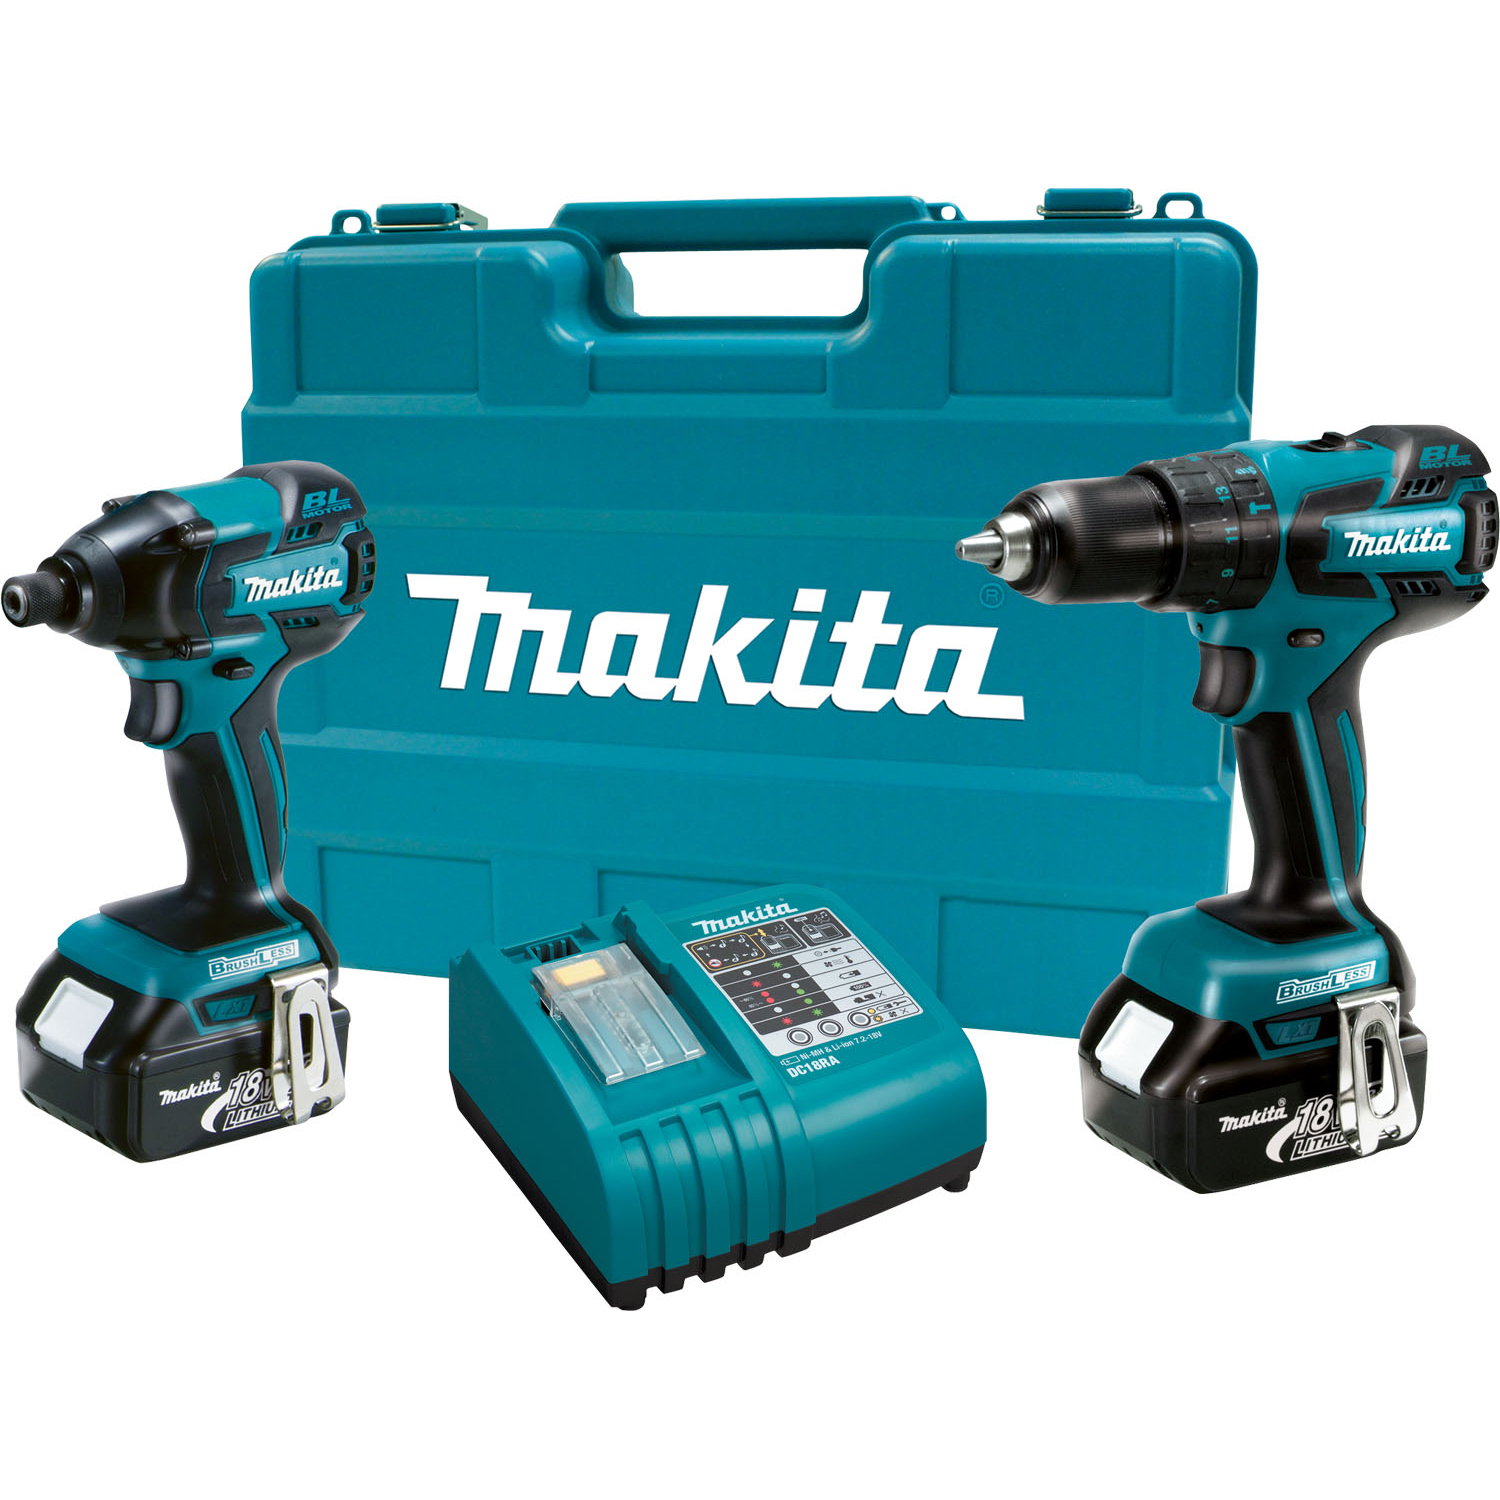 makita lxt239 18v cordless 1 2 inch hammer drill and impact driver combo kit ebay. Black Bedroom Furniture Sets. Home Design Ideas